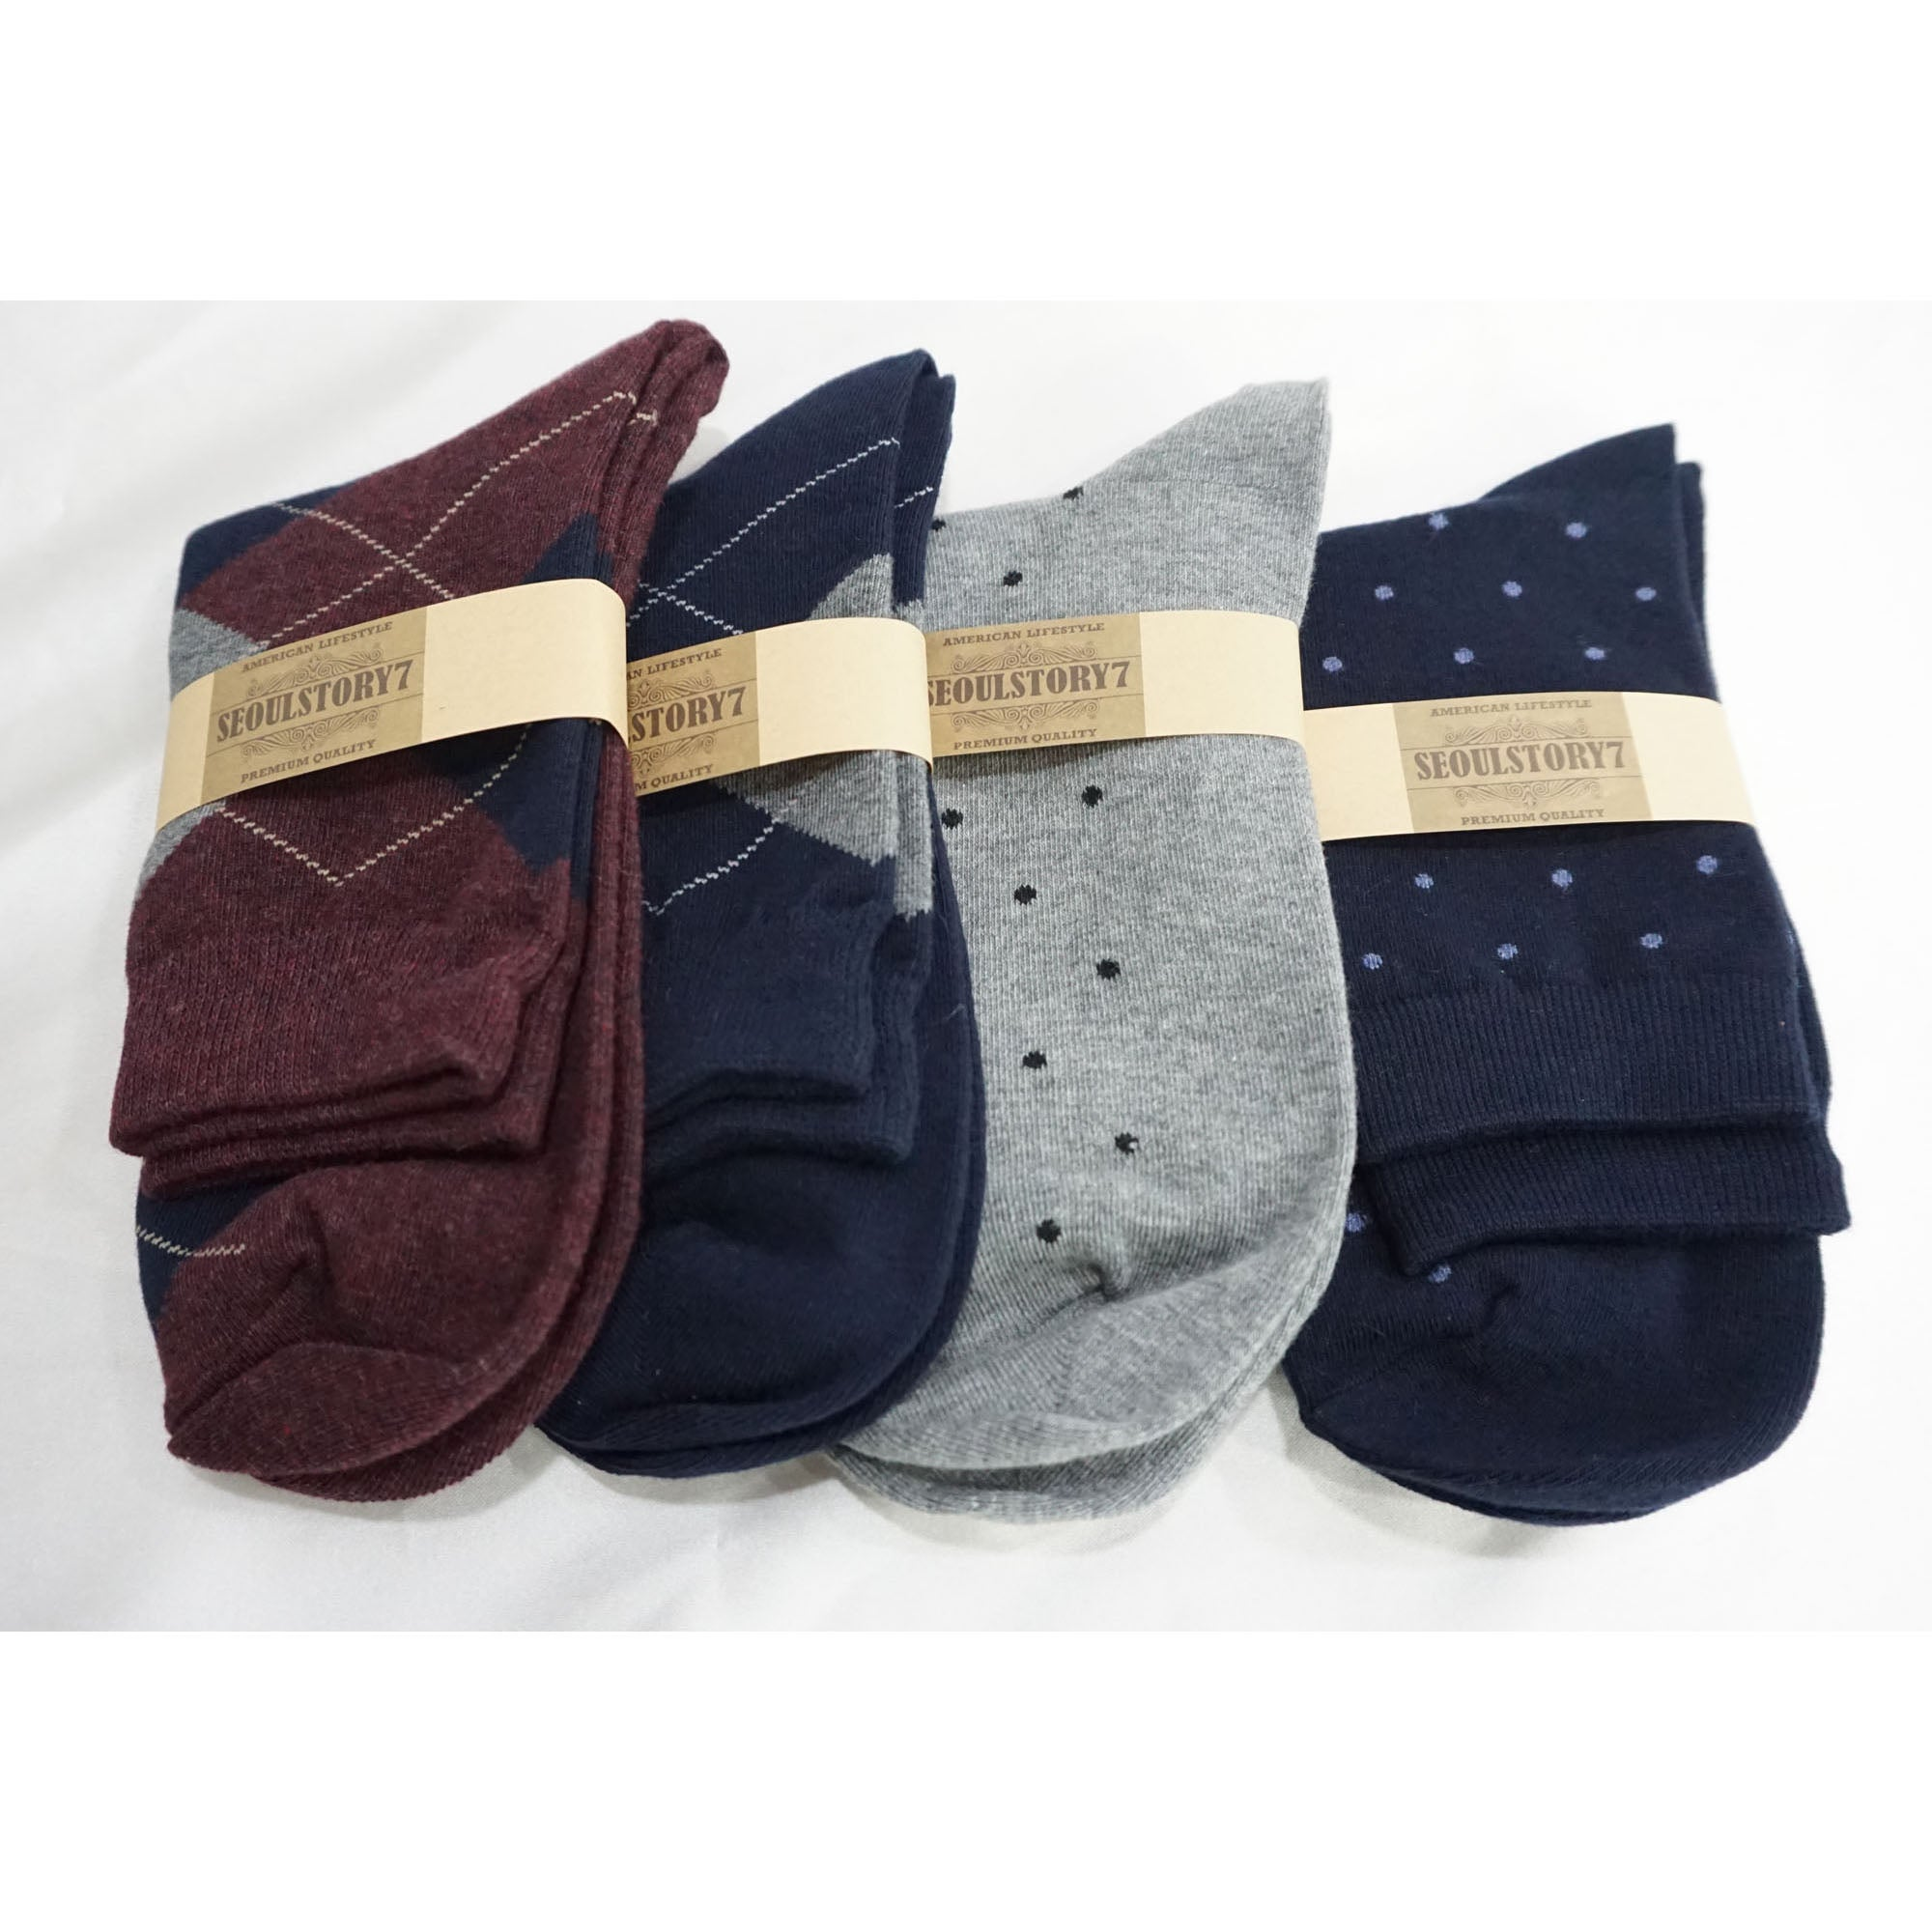 4Pack Men's Casual Cotton Patterned Socks Dot and Argyle